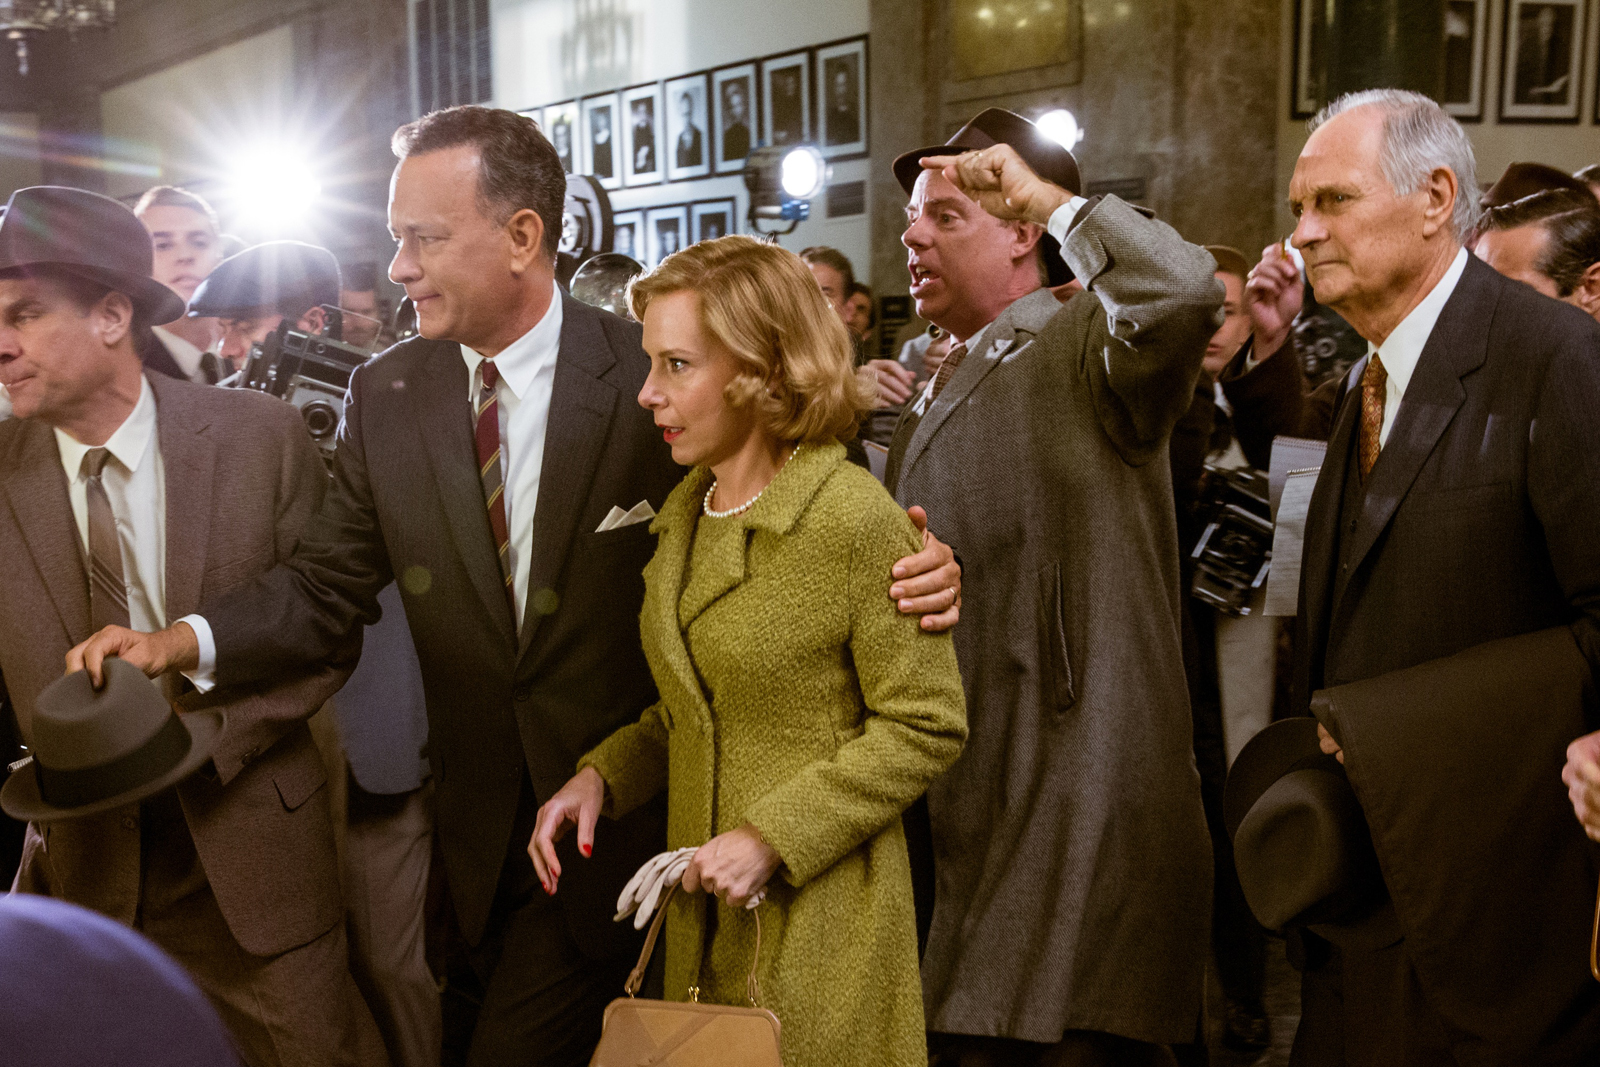 In DreamWorks Pictures/Fox 2000 Pictures' dramatic thriller BRIDGE OF SPIES, directed by Steven Spielberg, Brooklyn lawyer James Donovan (Tom Hanks) and his wife Mary (Amy Ryan) become the target of anti-communist fears when Donovan agrees to defend a Soviet agent arrested in the U.S.